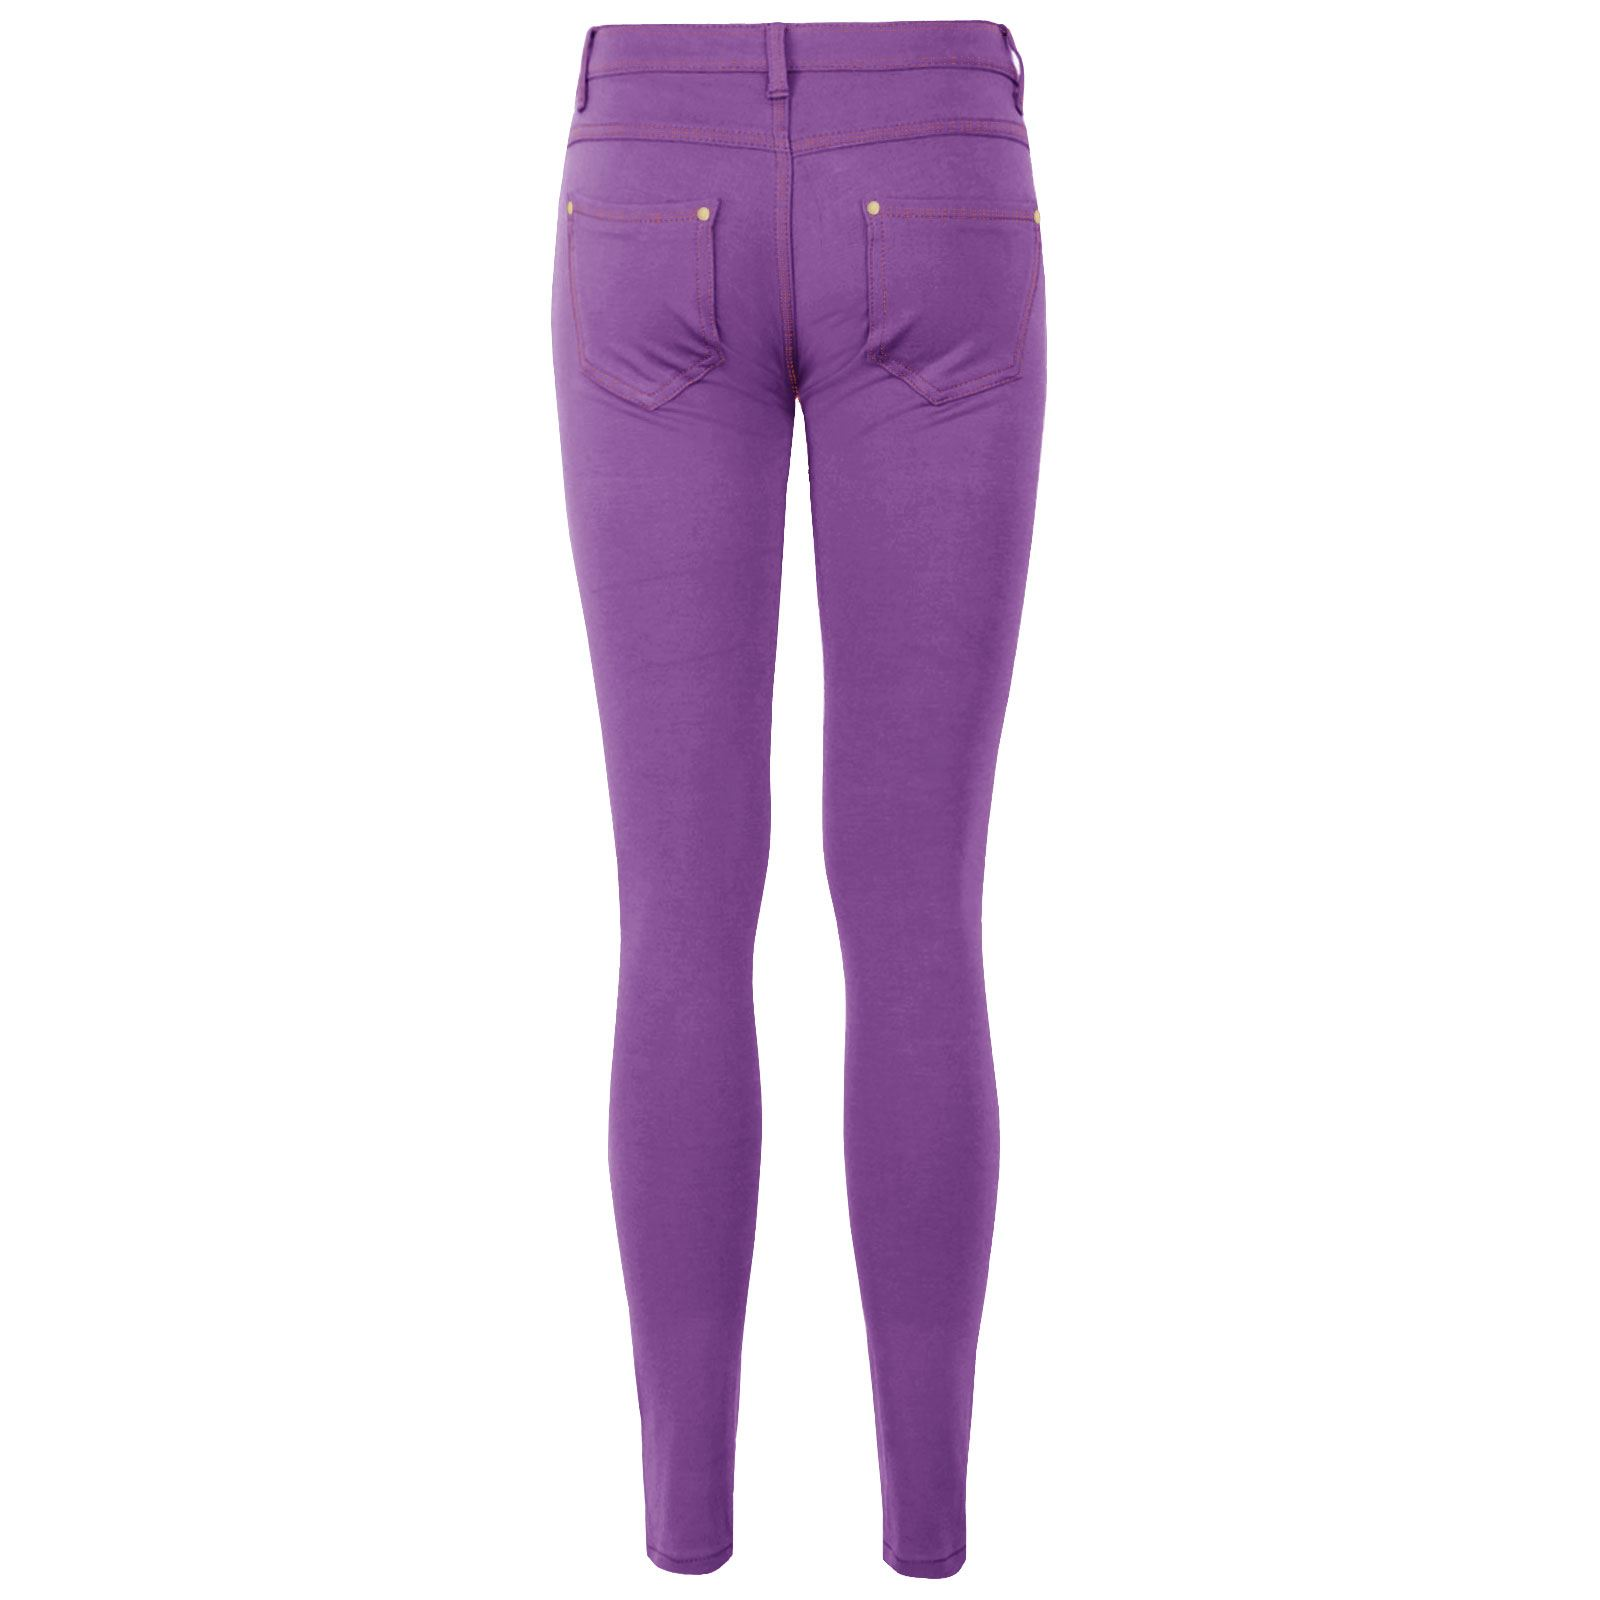 af62152d8b8fd0 WOMENS SKINNY JEANS STRETCHY JEGGINGS LADIES FIT COLOURED TROUSERS ...